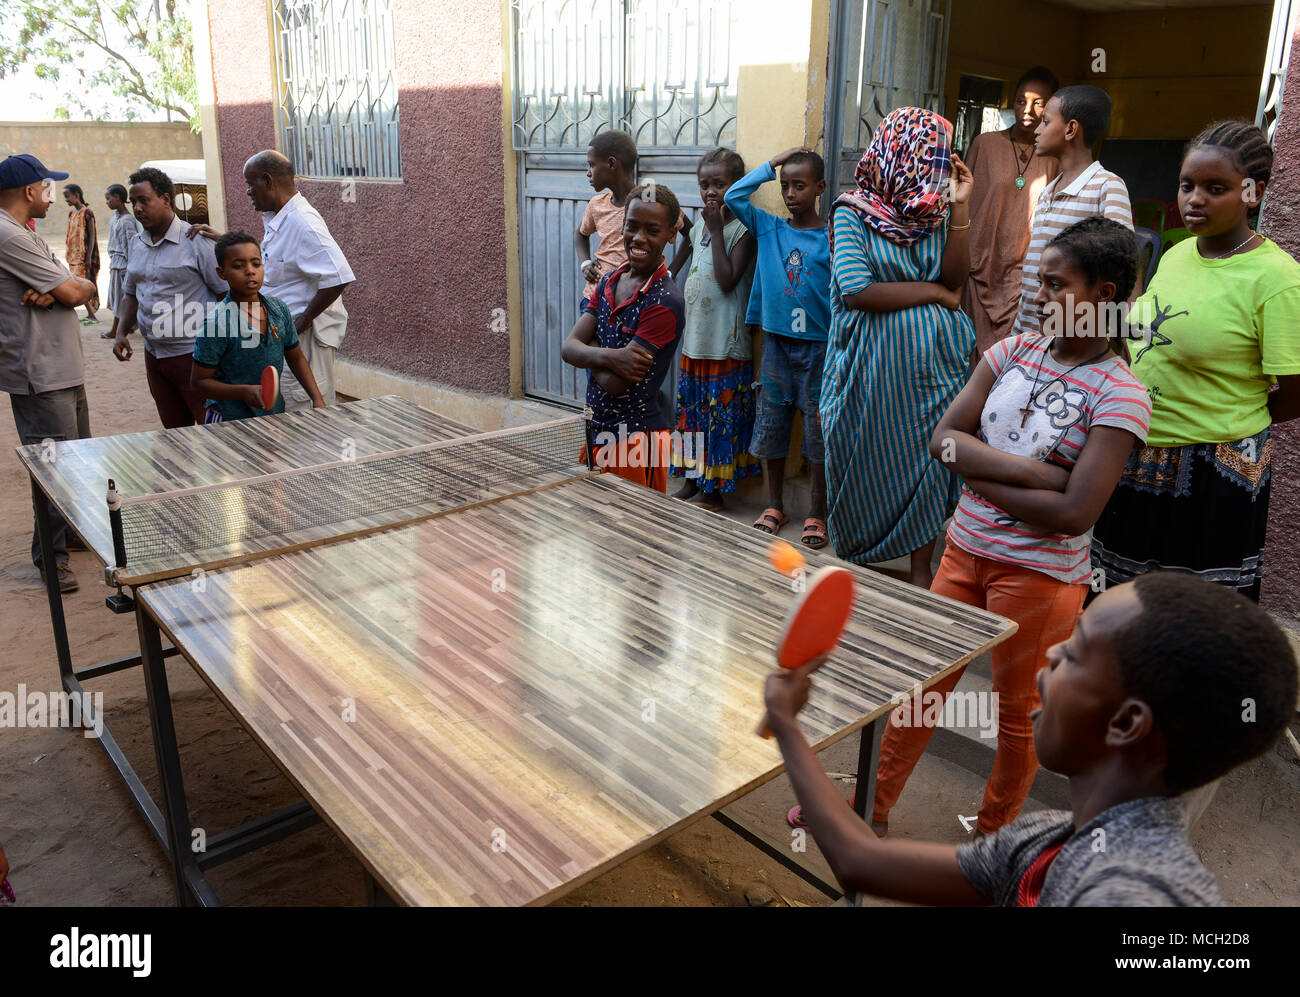 ETHIOPIA , Dire Dawa, children play table tennis / AETHIOPIEN, Dire Dawa, Kinder spielen Tischtennis - Stock Image